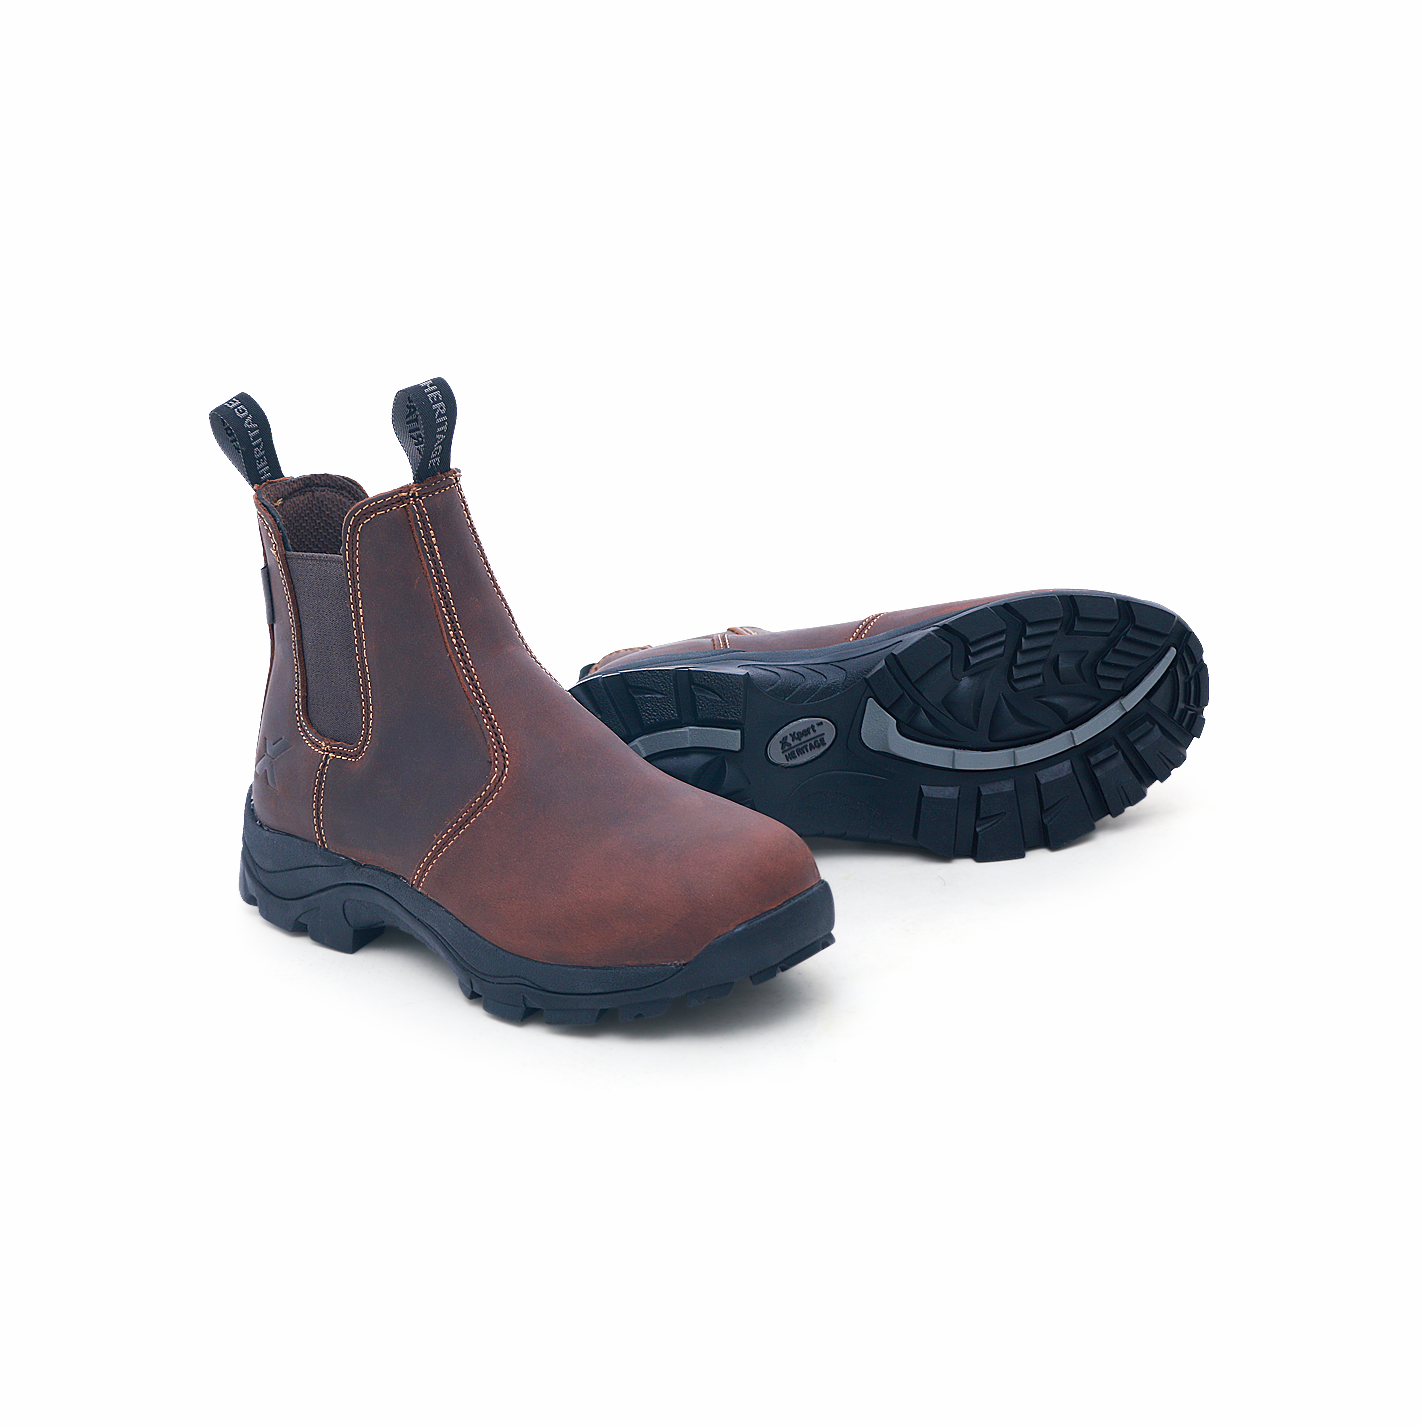 Xpert Heritage Dealer S3 Safety Boot